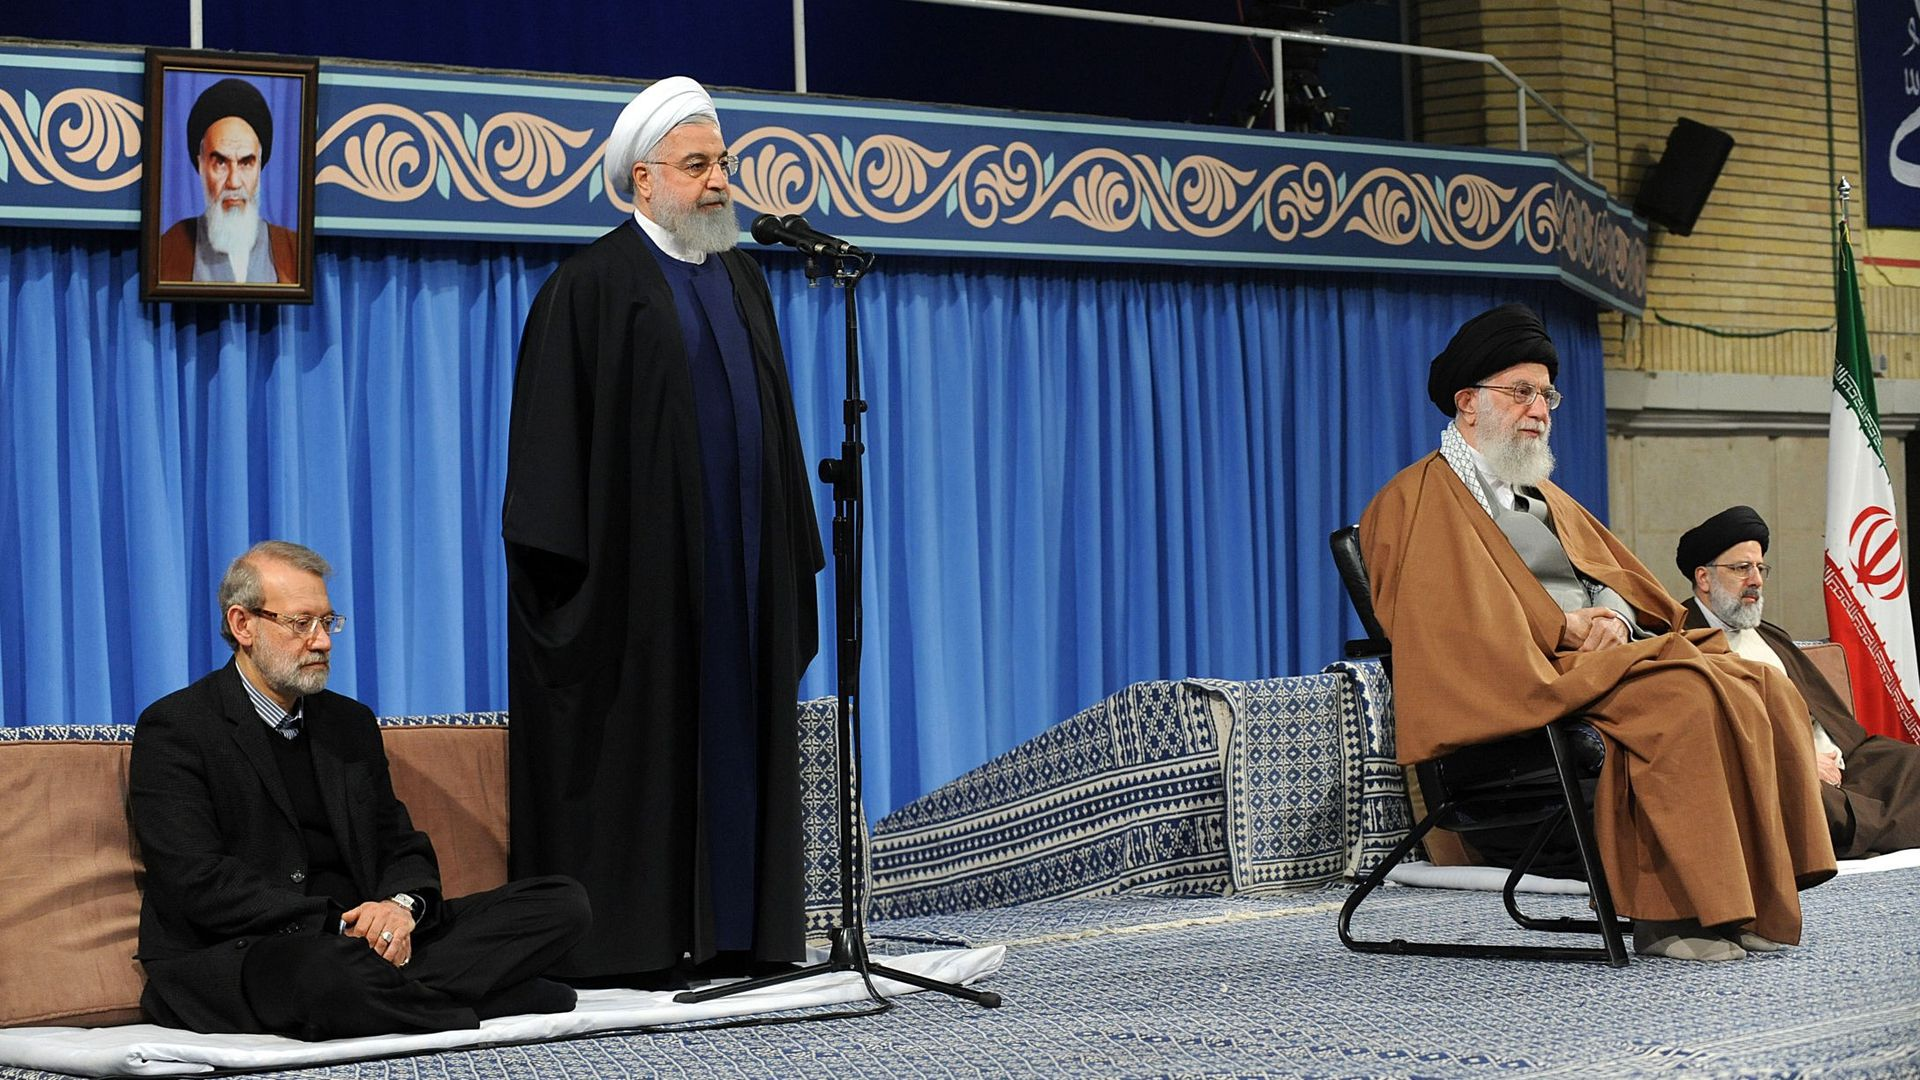 Rouhani and Khamanei on stage together